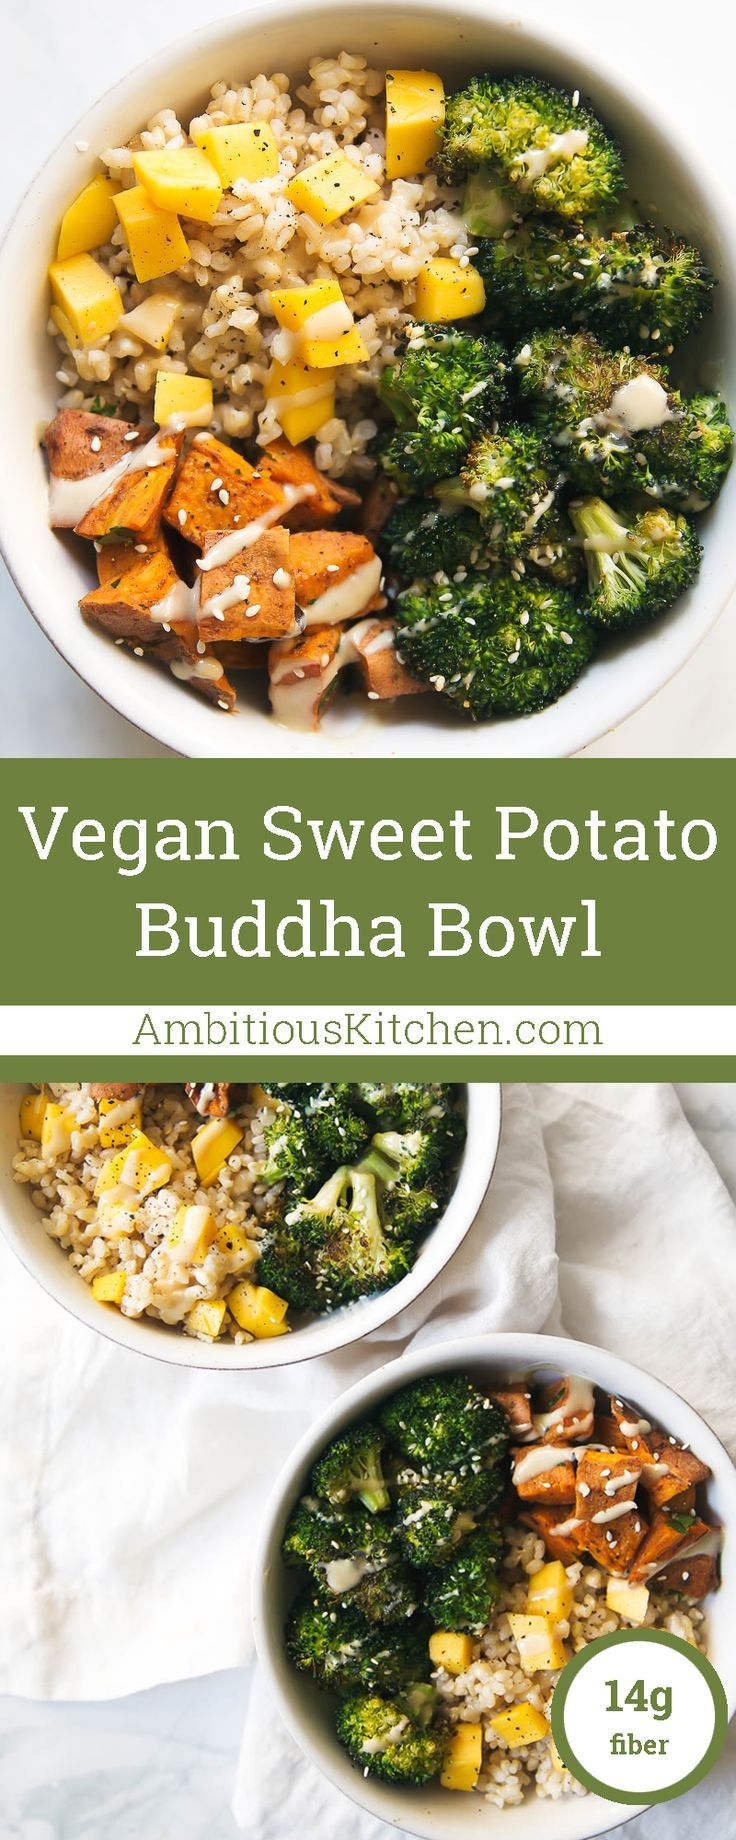 A nutritious make-ahead meal prep idea: sweet potato buddha bowl with the creamiest sweet almond butter dressing served over coconut brown rice! Vegan & gluten free!